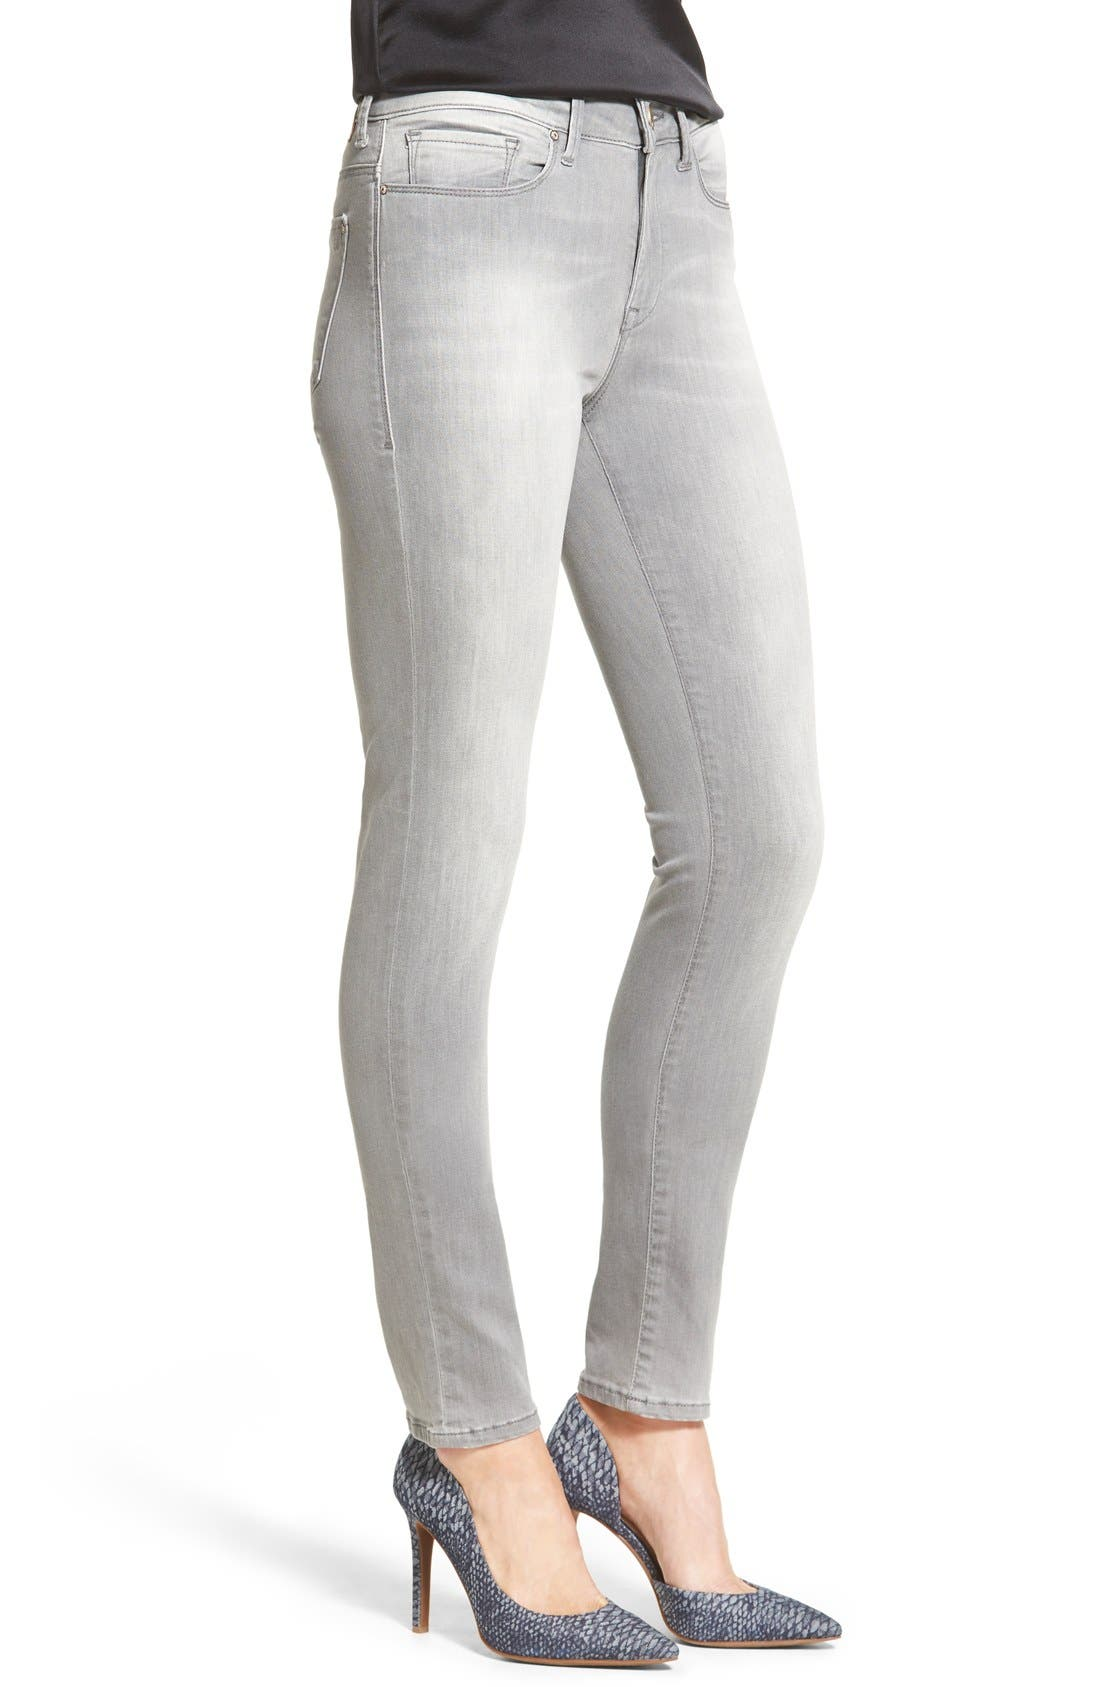 Alternate Image 3  - Mavi Jeans 'Alissa' Stretch Skinny Jeans (Light Grey Tribeca) (Petite)